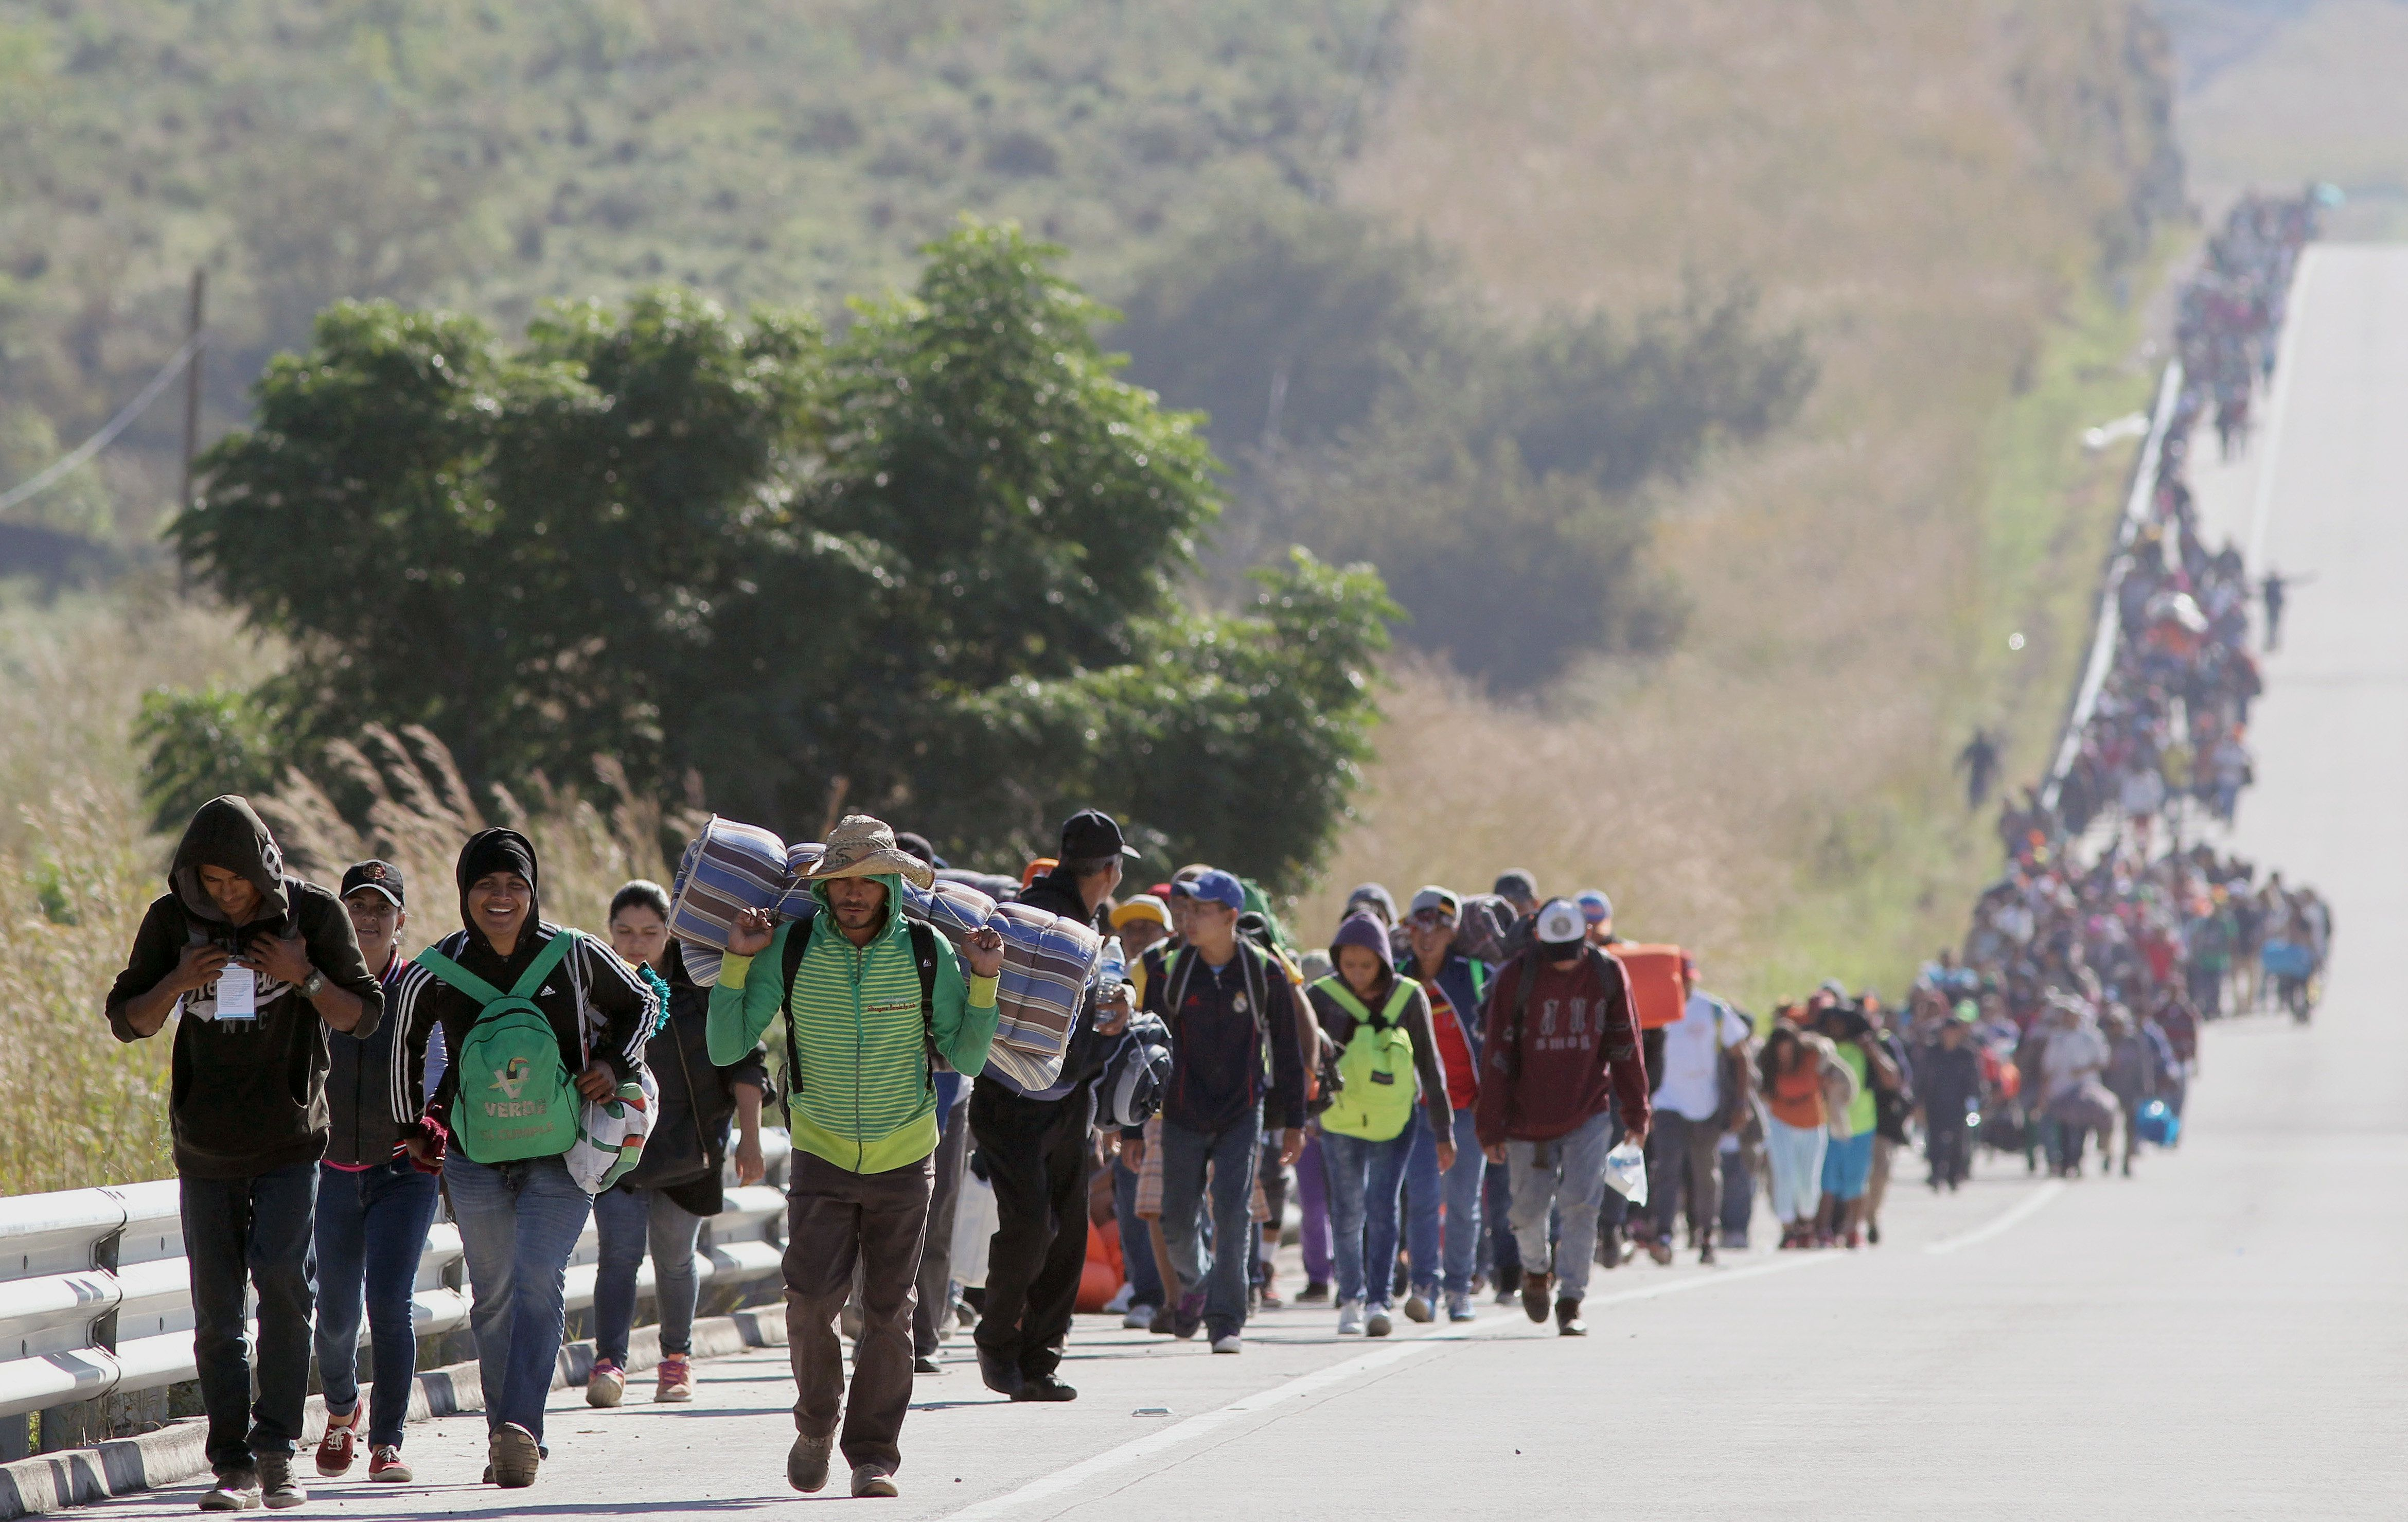 Migrants from poor Central American countries -mostly Hondurans- moving towards the United States in hopes of a better life, walk along the road between Zapopan and Tequila in the Mexican state of Jalisco, on their trek north, on November 13, 2018. - Defense Secretary Jim Mattis said Tuesday he will visit the US-Mexico border, where thousands of active-duty soldiers have been deployed to help border police prepare for the arrival of a 'caravan' of migrants. (Photo by ULISES RUIZ / AFP)        (Photo credit should read ULISES RUIZ/AFP/Getty Images)